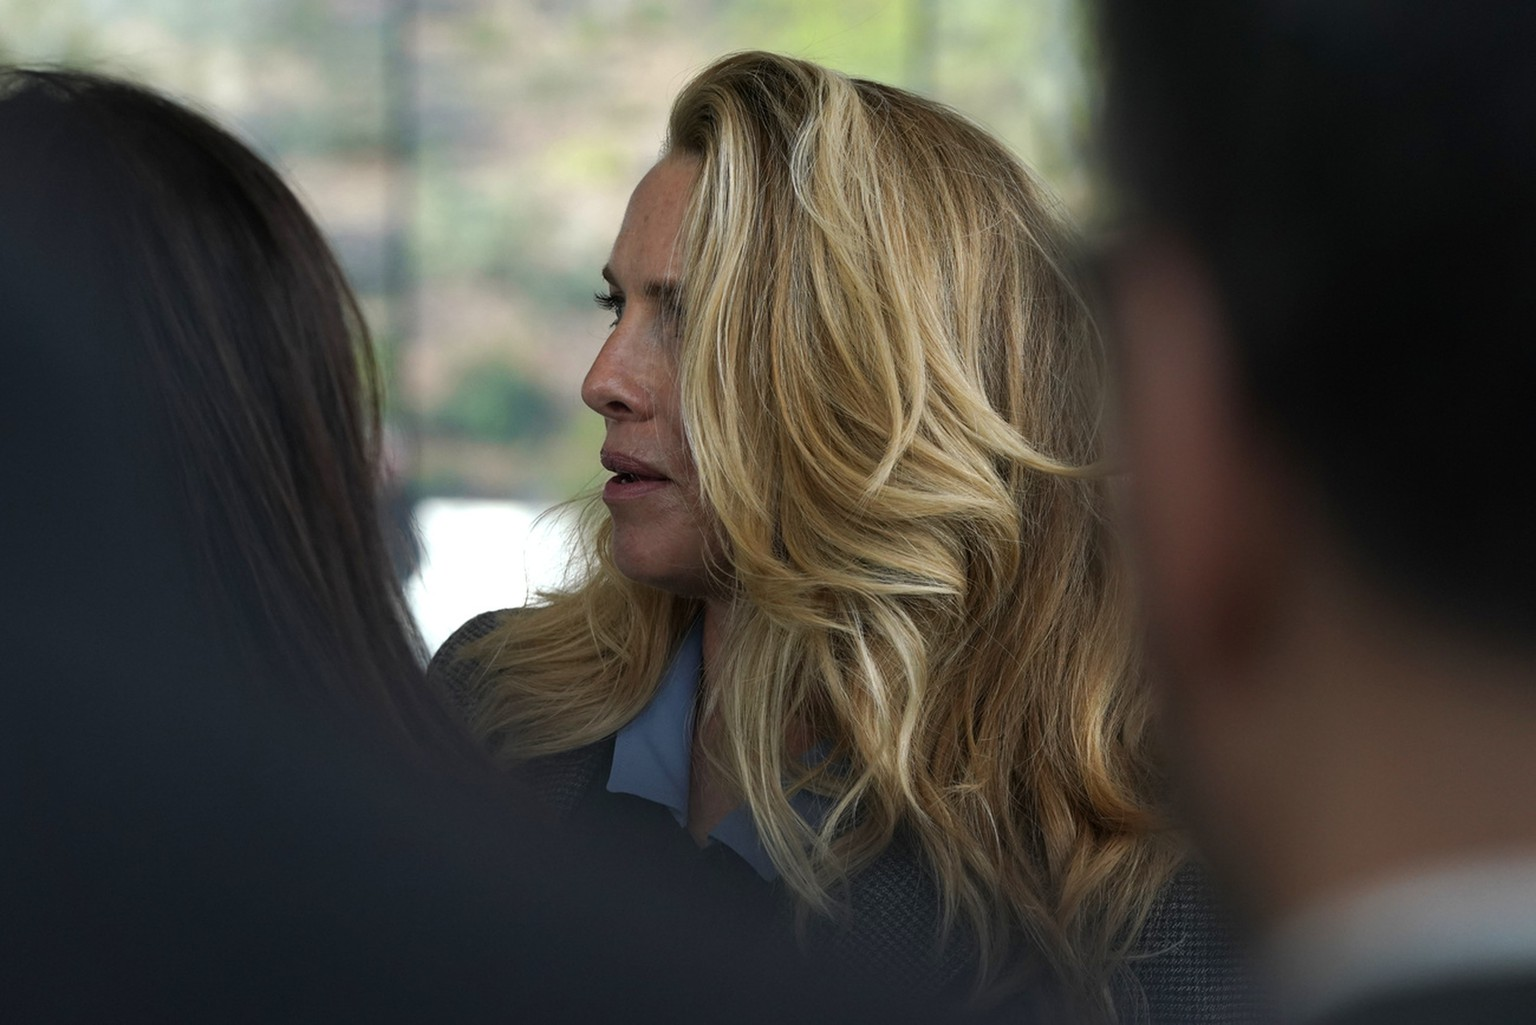 Laurene Powell, the widow of Steve Jobs, waits to enter the Steve Jobs Theater for an event to announce new products Monday, March. 25, 2019, in Cupertino, Calif. (AP Photo/Tony Avelar)